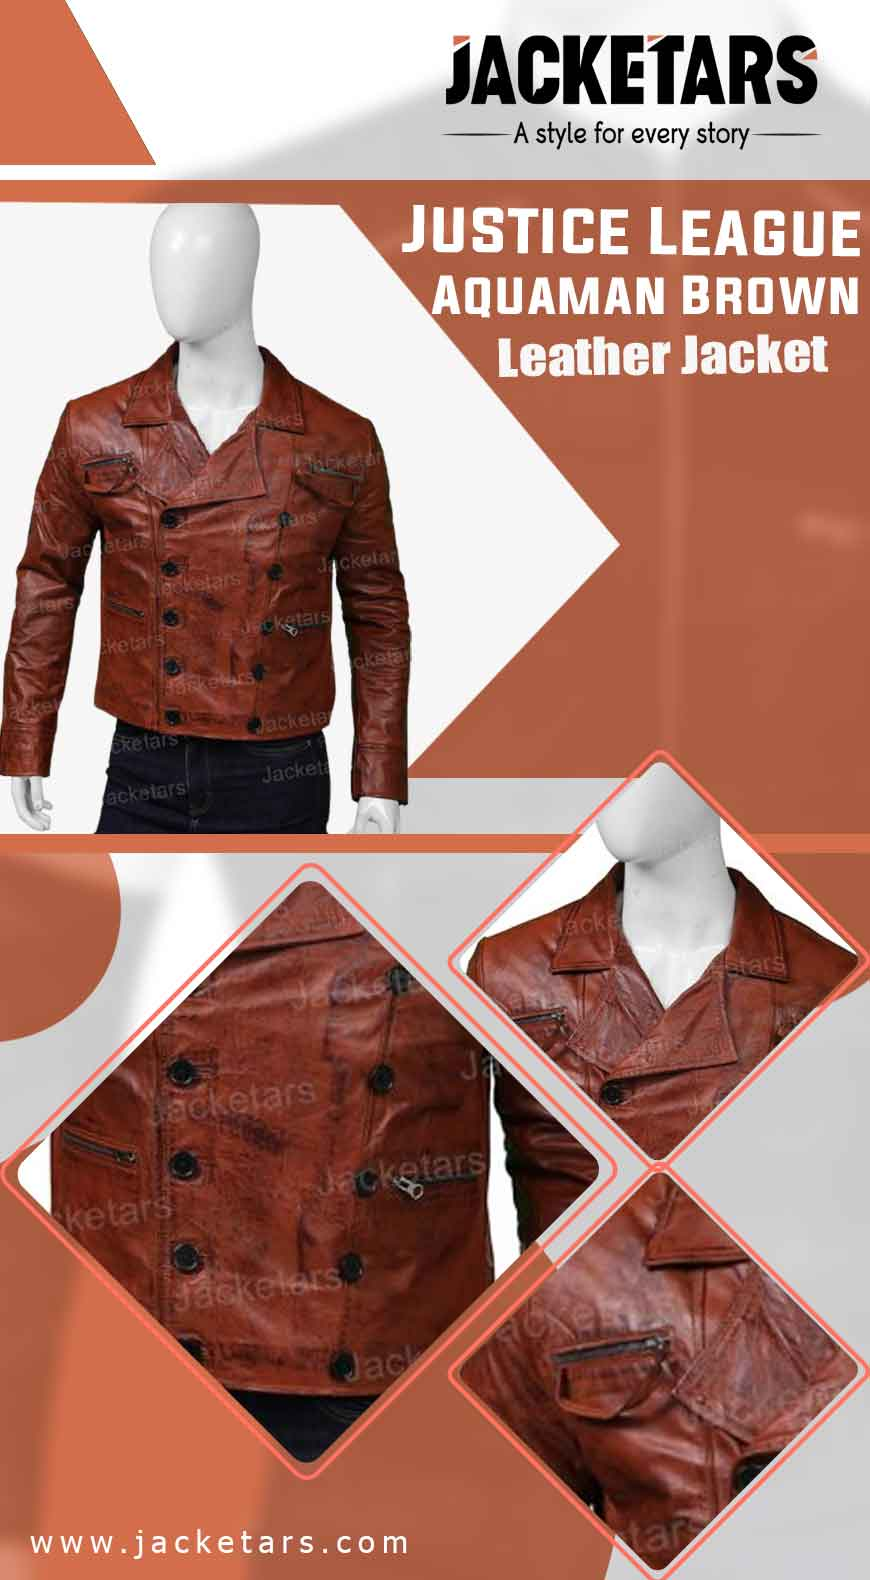 Justice League Aquaman Brown Leather Jacket info